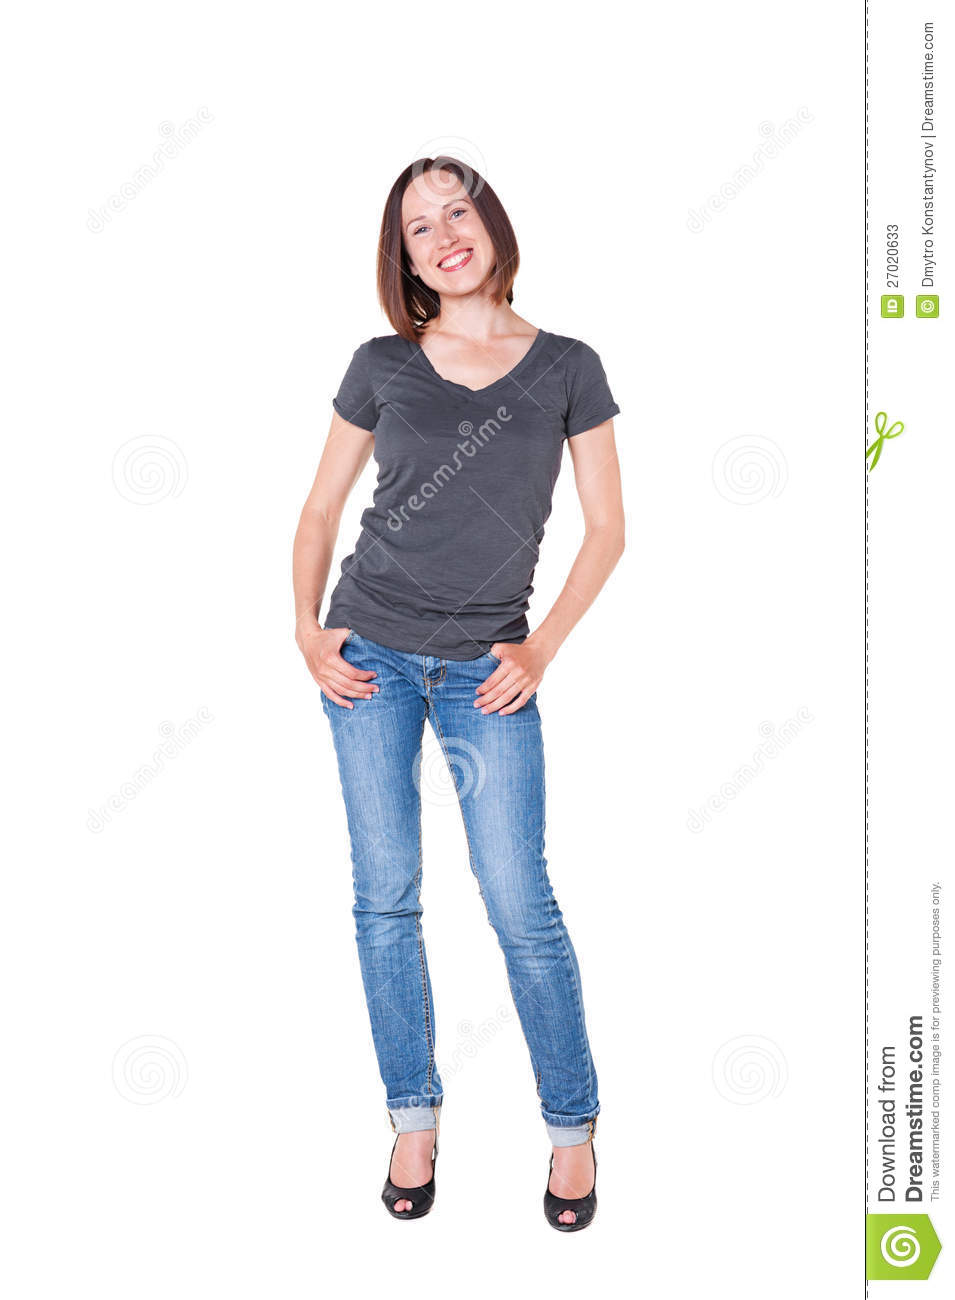 Beautiful Young Woman In Jeans And Tshirt Stock Photos - Image 27020633